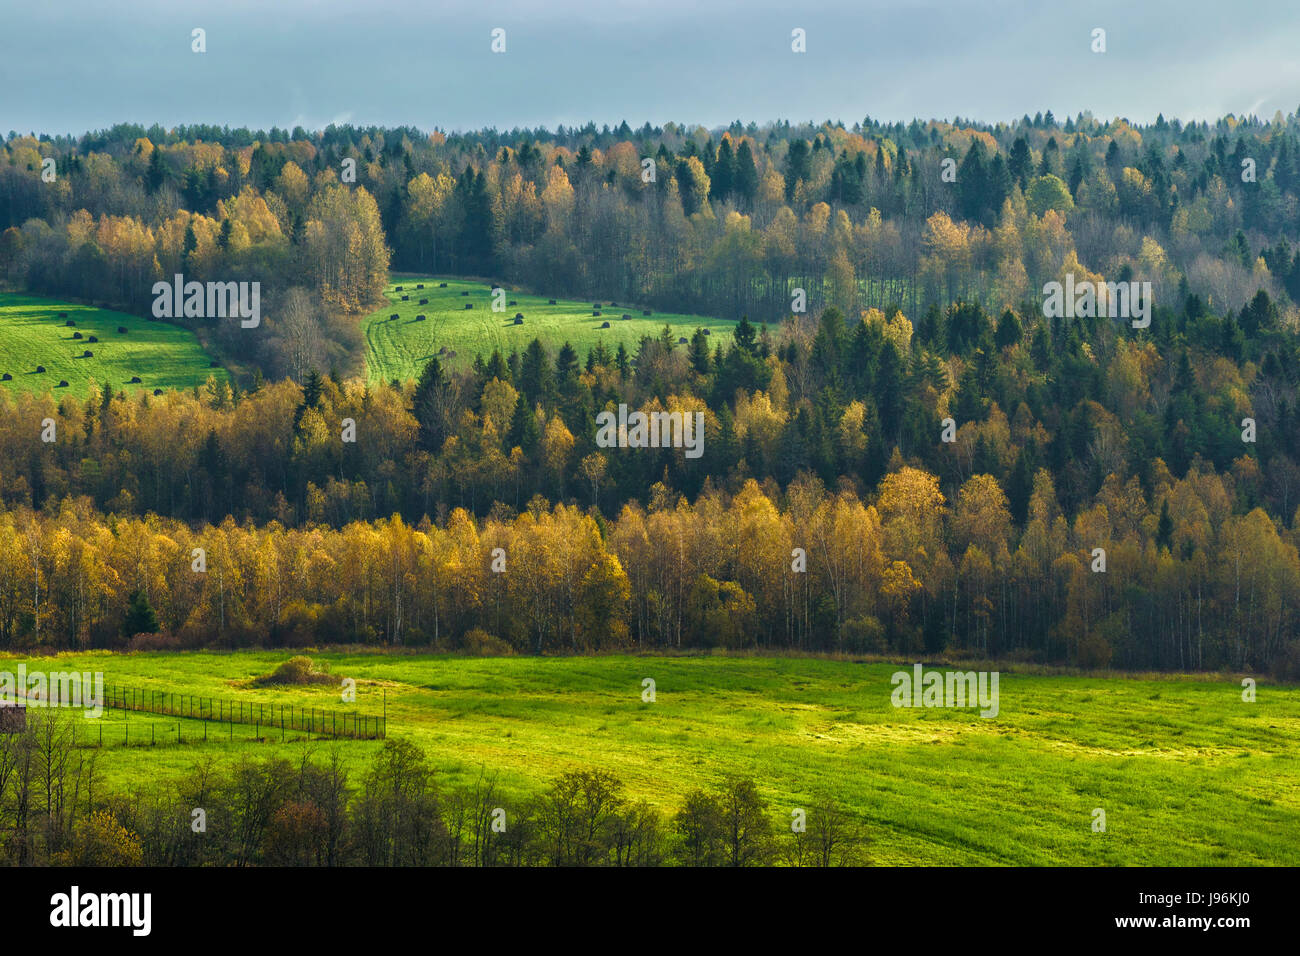 Autumn morning in the Vologda region of Russia. - Stock Image